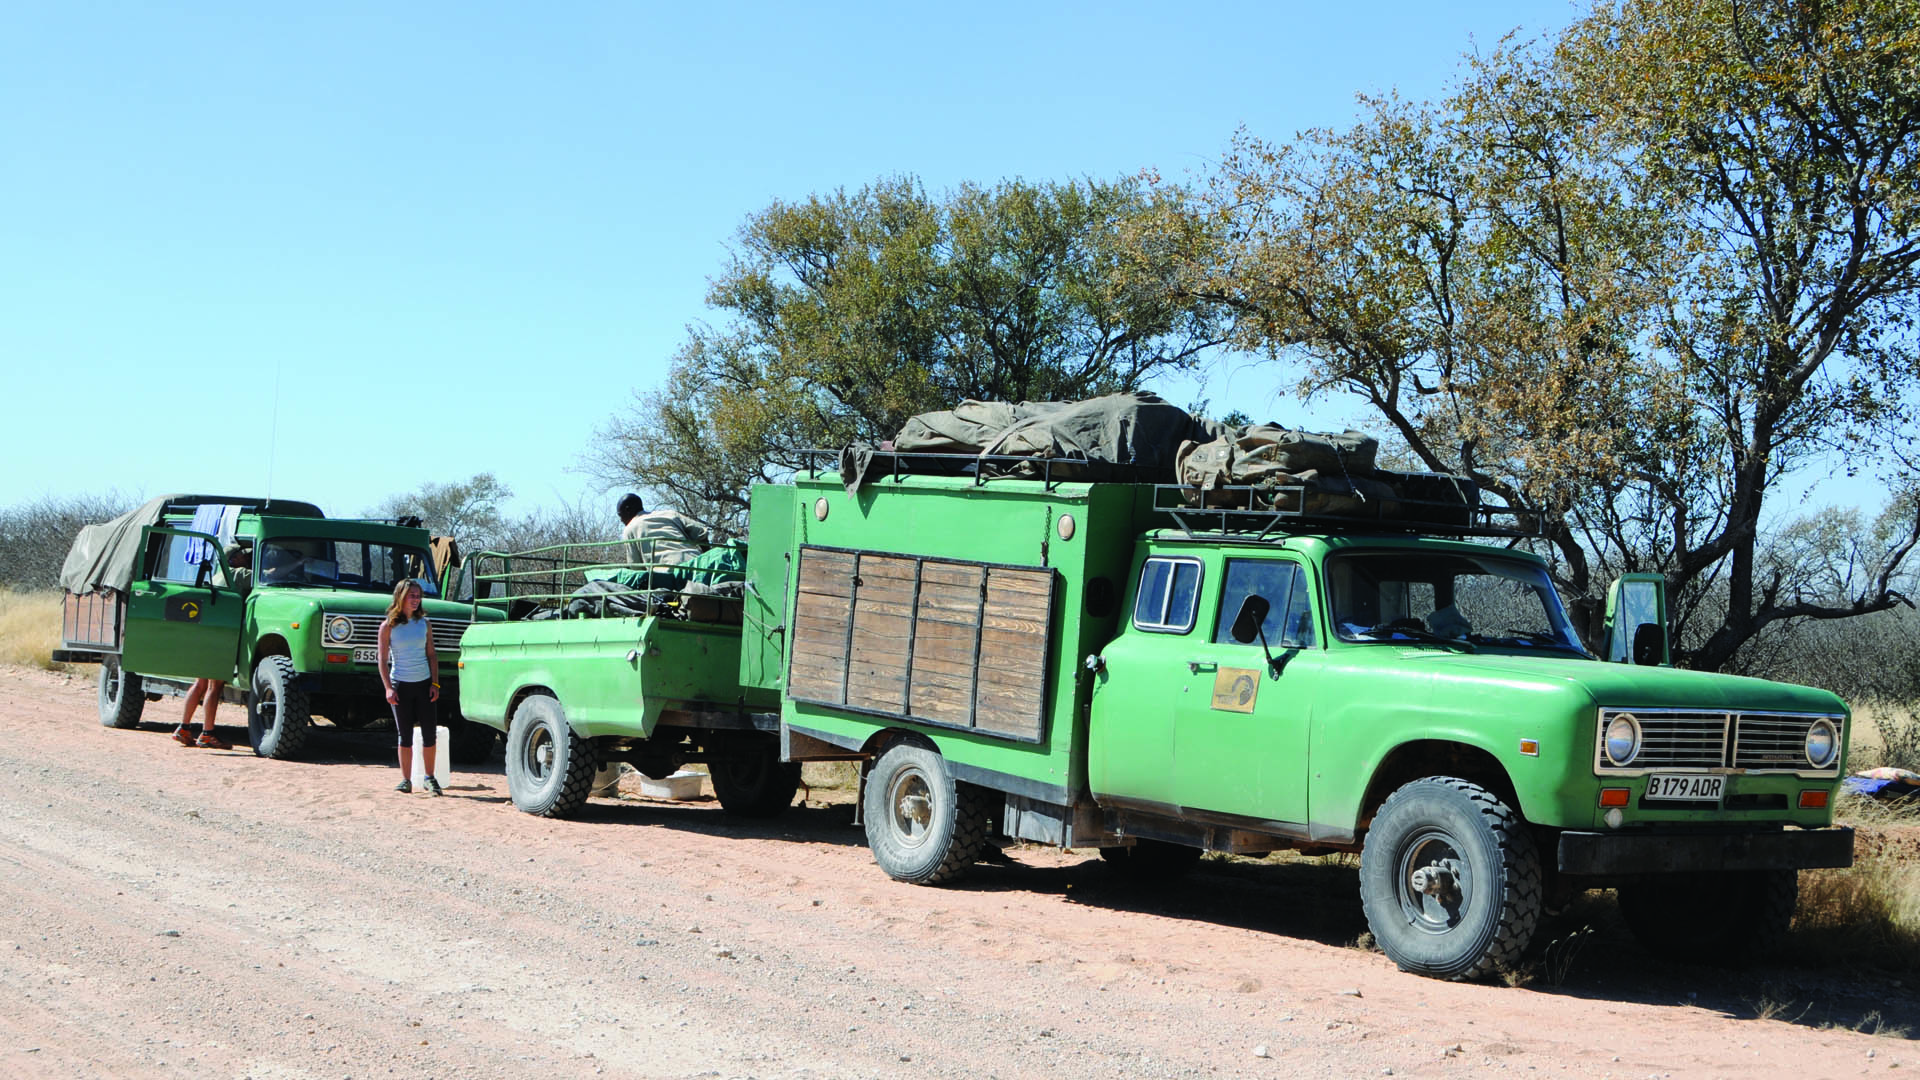 Kalahari Support Vehicles